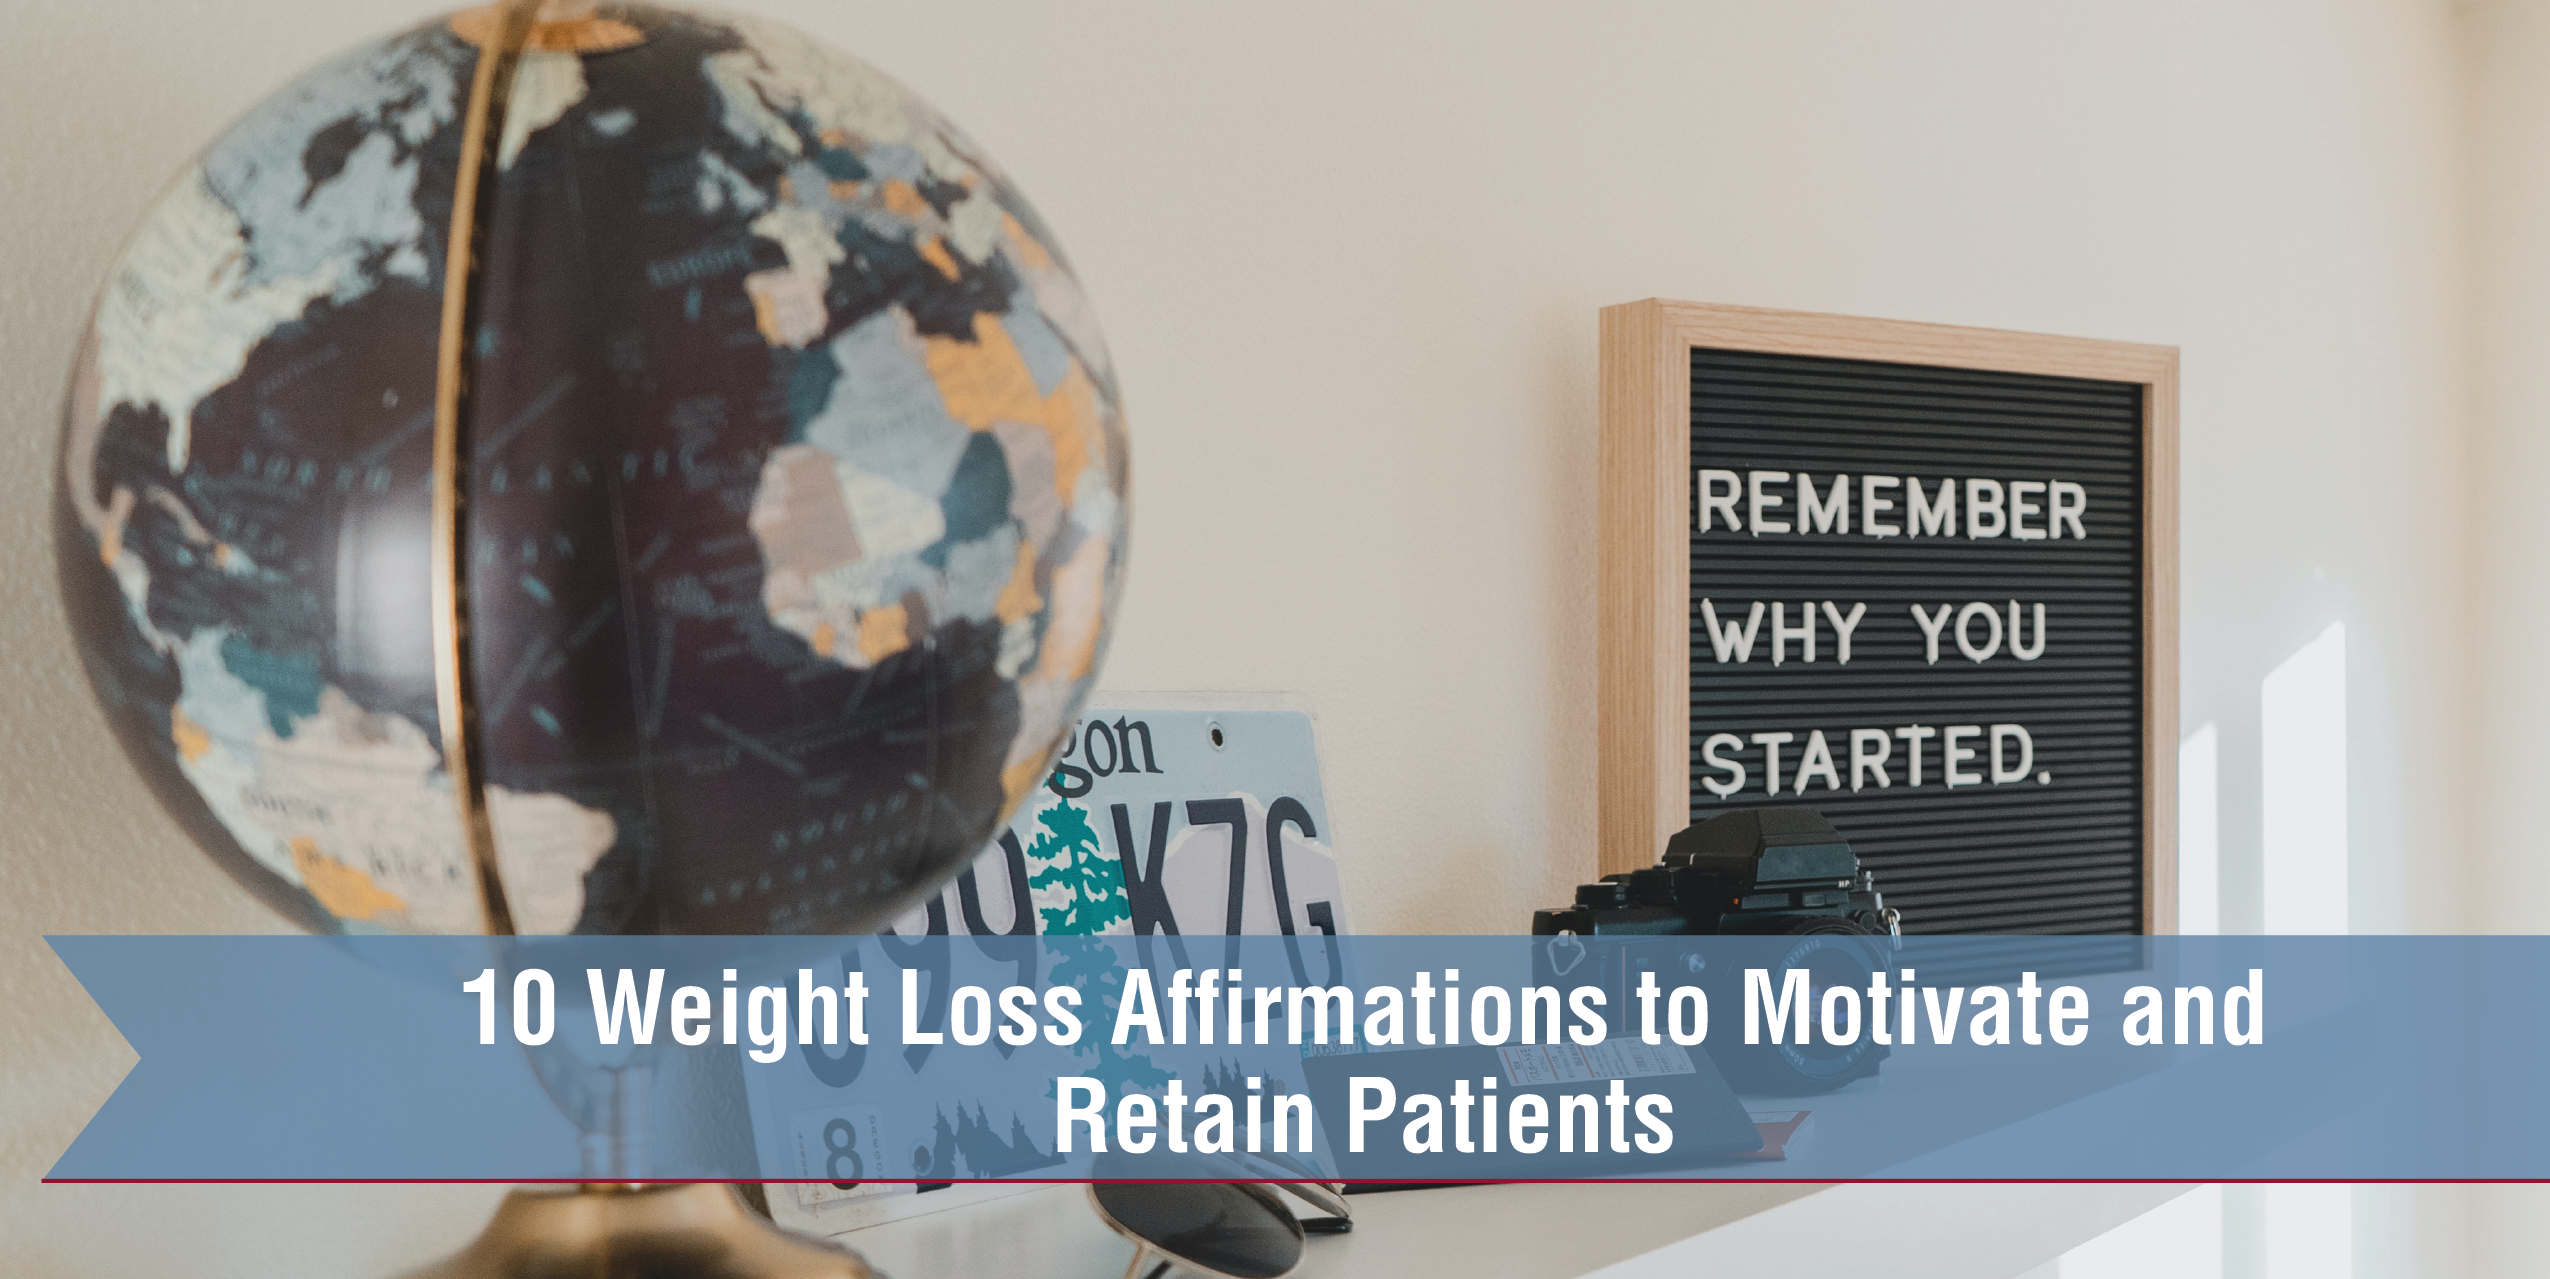 10 Weight Loss Affirmations To Motivate And Retain Patients